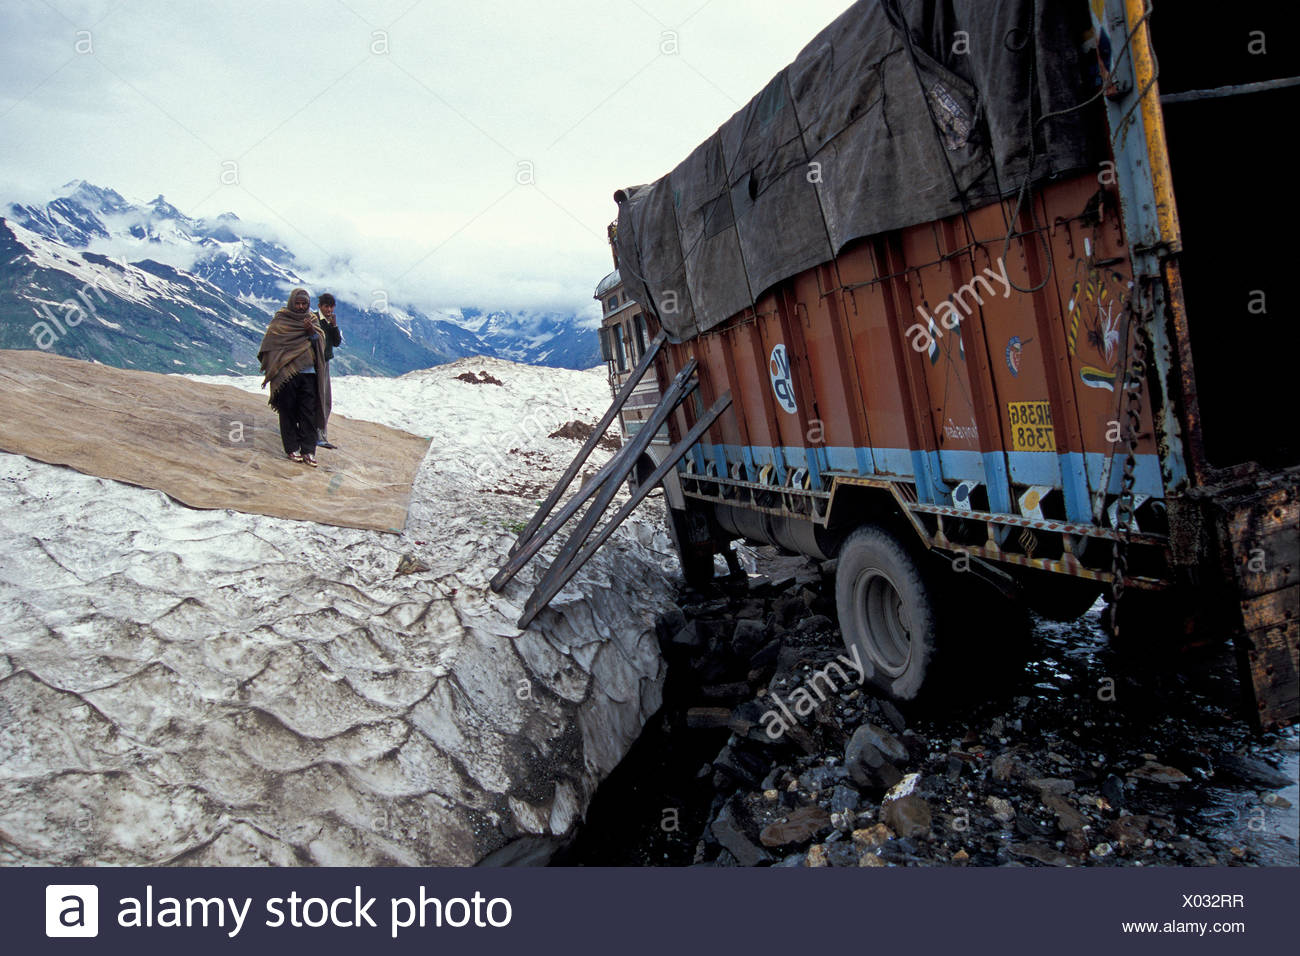 Truck with a broken axle on a pass, Rohtang Pass, Himachal Pradesh, Indian Himalayas, North India, India, Asia - Stock Image